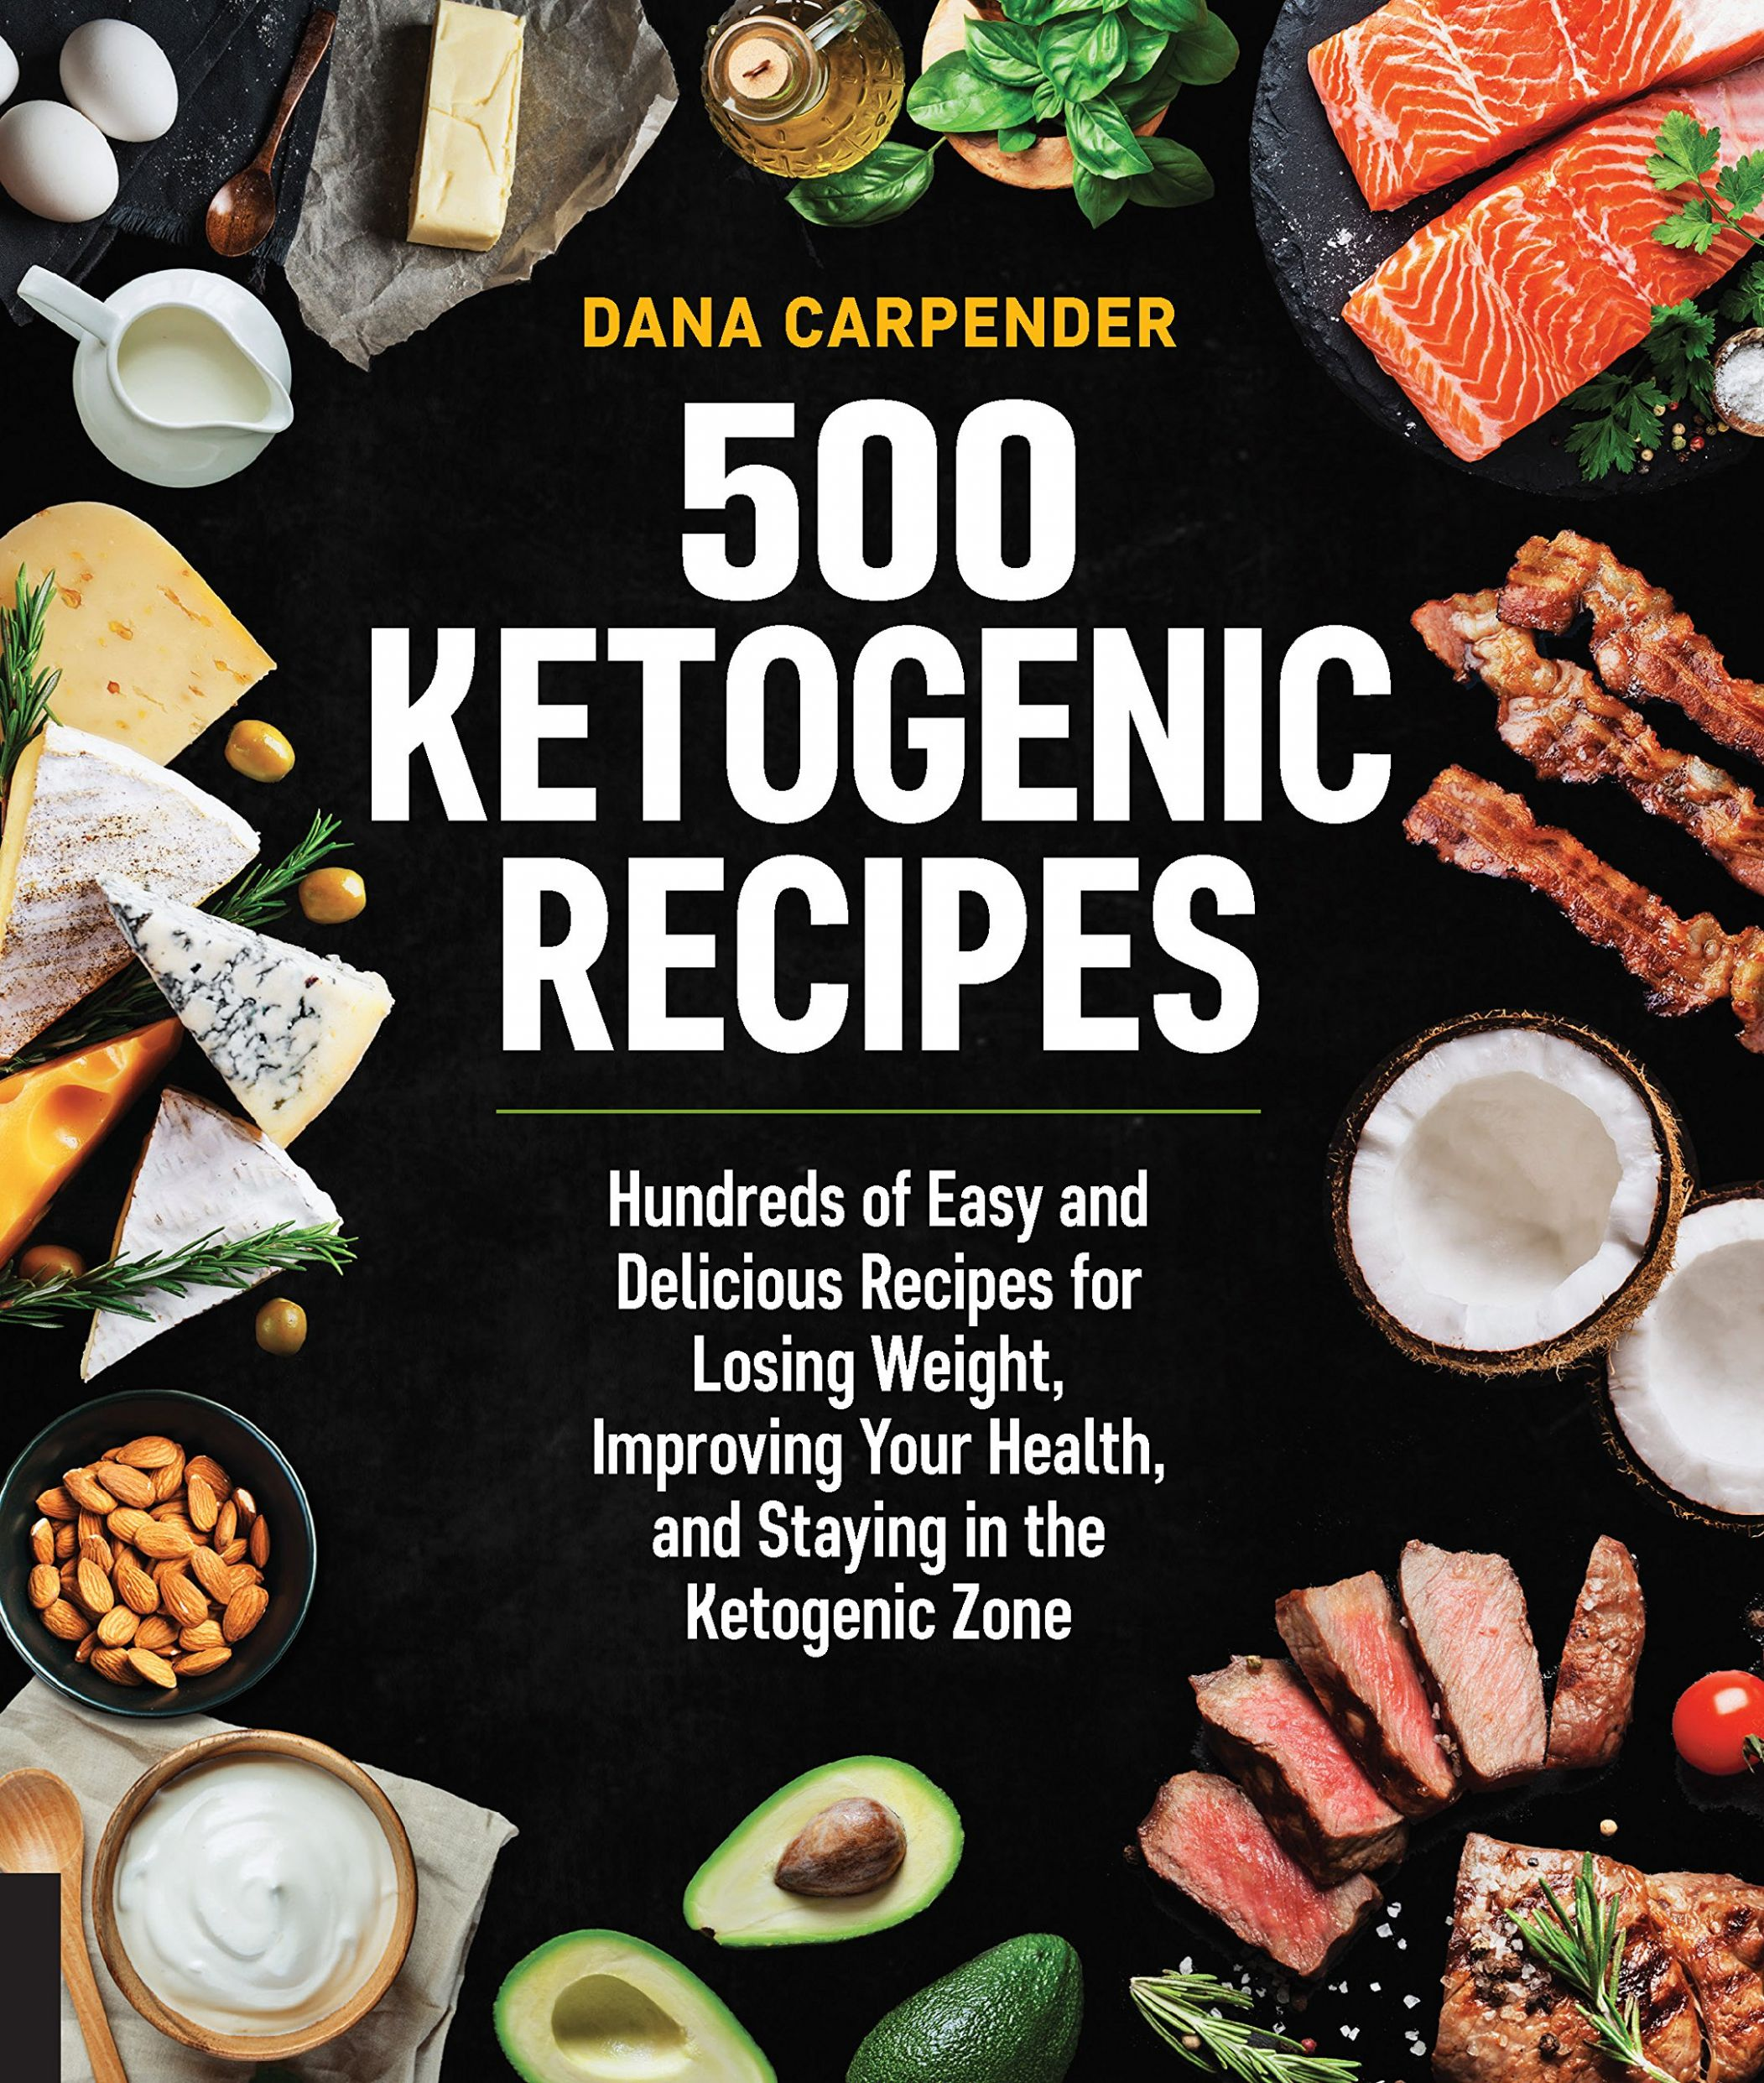 8 Ketogenic Recipes: Hundreds of Easy and Delicious Recipes for ..